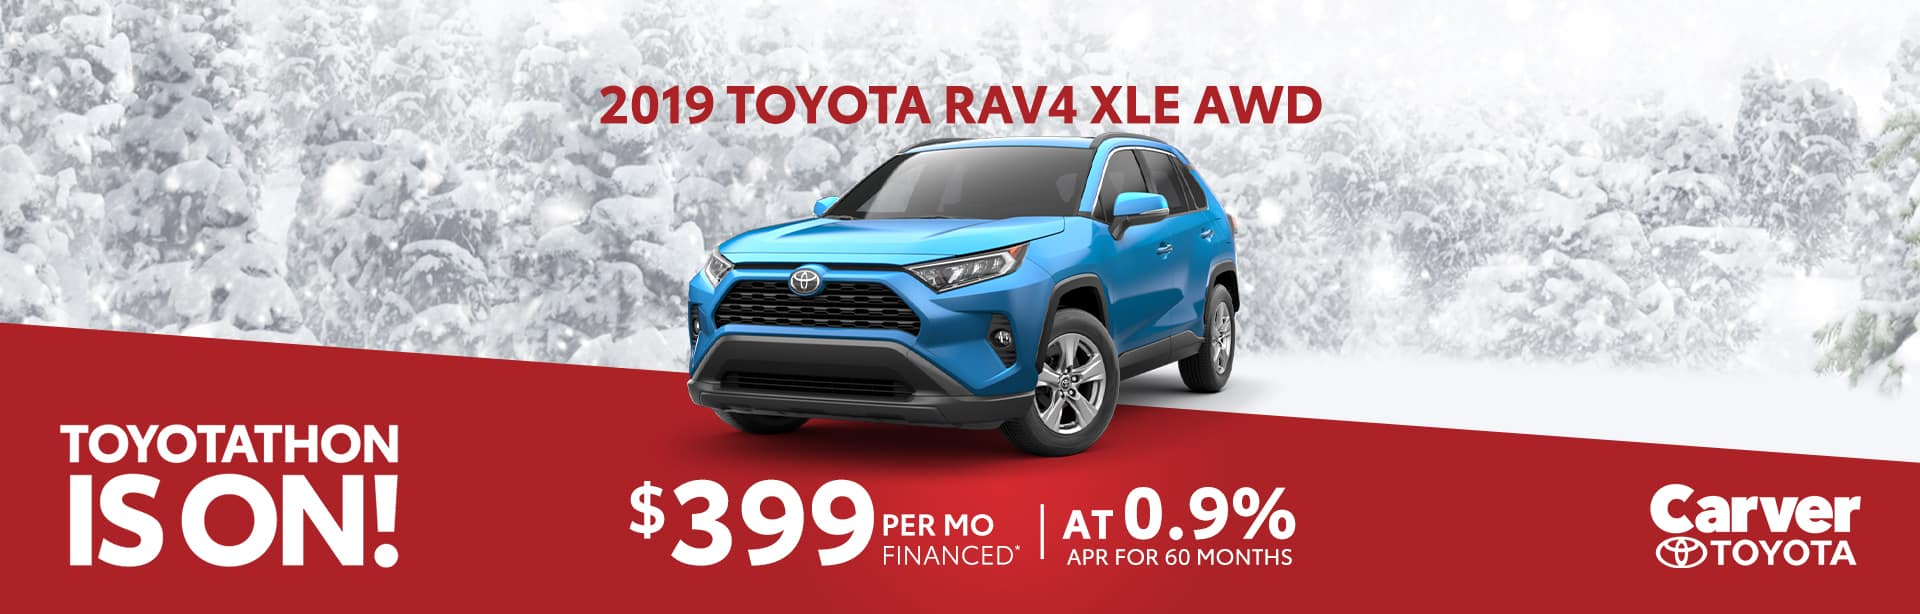 Finance a Rav4 and pay $399 a month in Taylorsville, Indiana